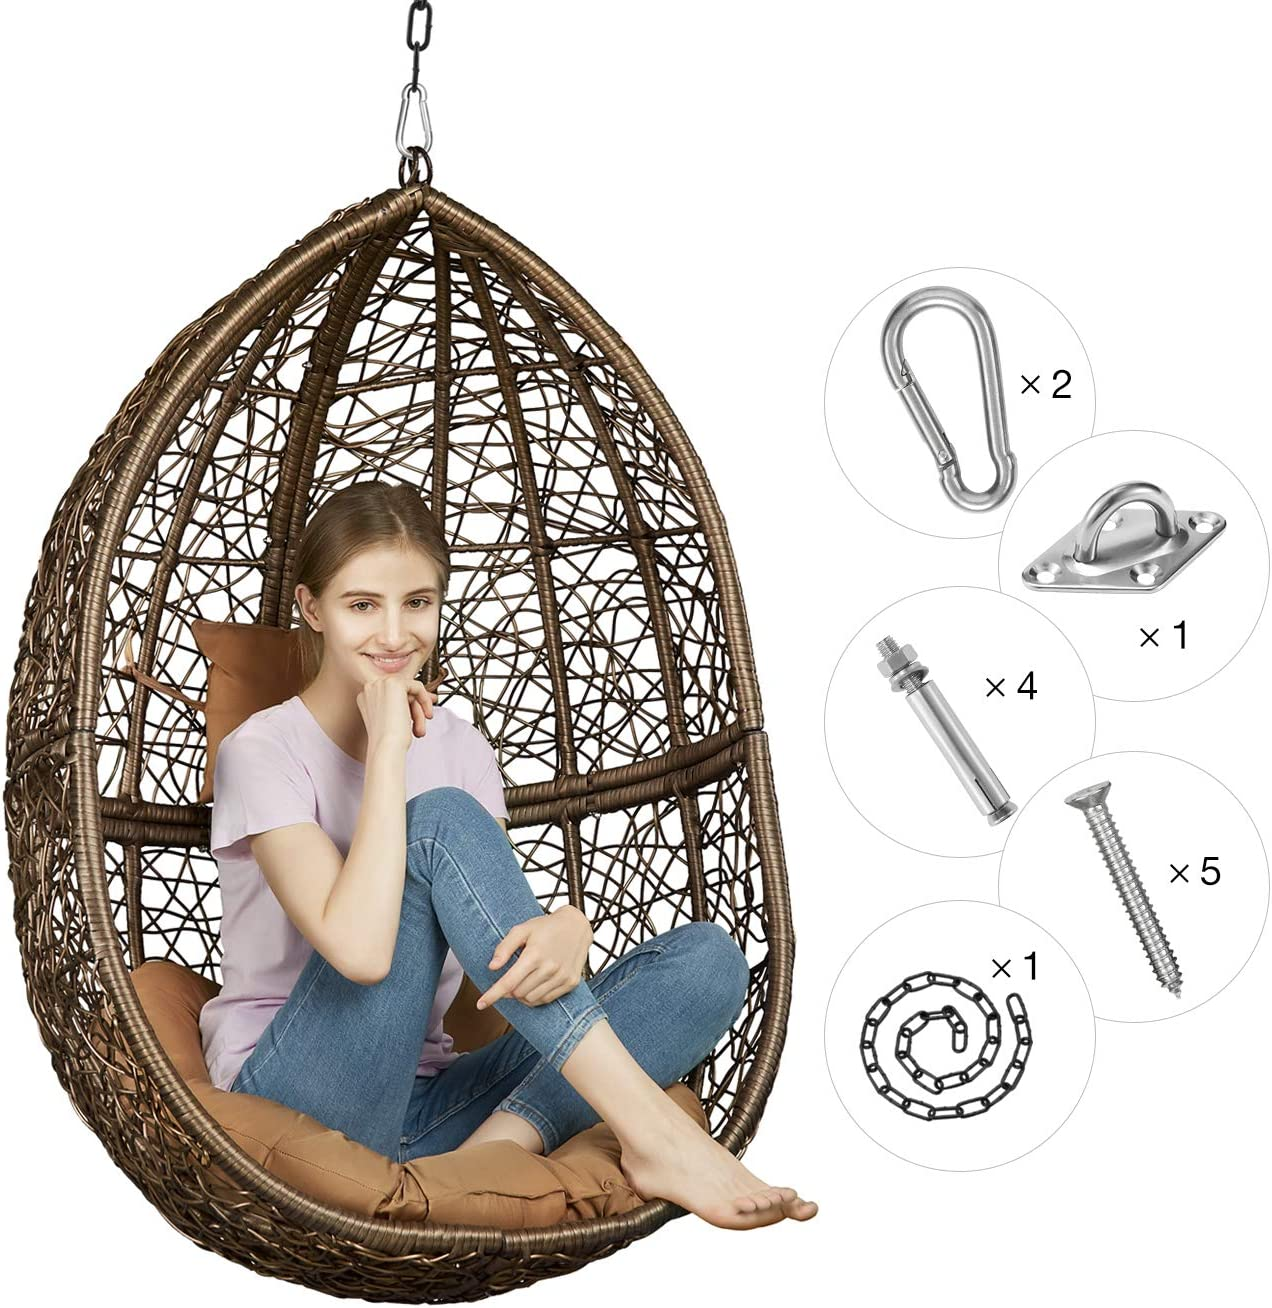 Greenstell Rattan Wicker Egg Hammock Chair with Hanging Kits,Weather Fastness Hanging Chair with Comfortable Brown Cushion and Pillow,Basket Swing Chair for Indoor,Outdoor Bedroom,Patio,Garden Brown